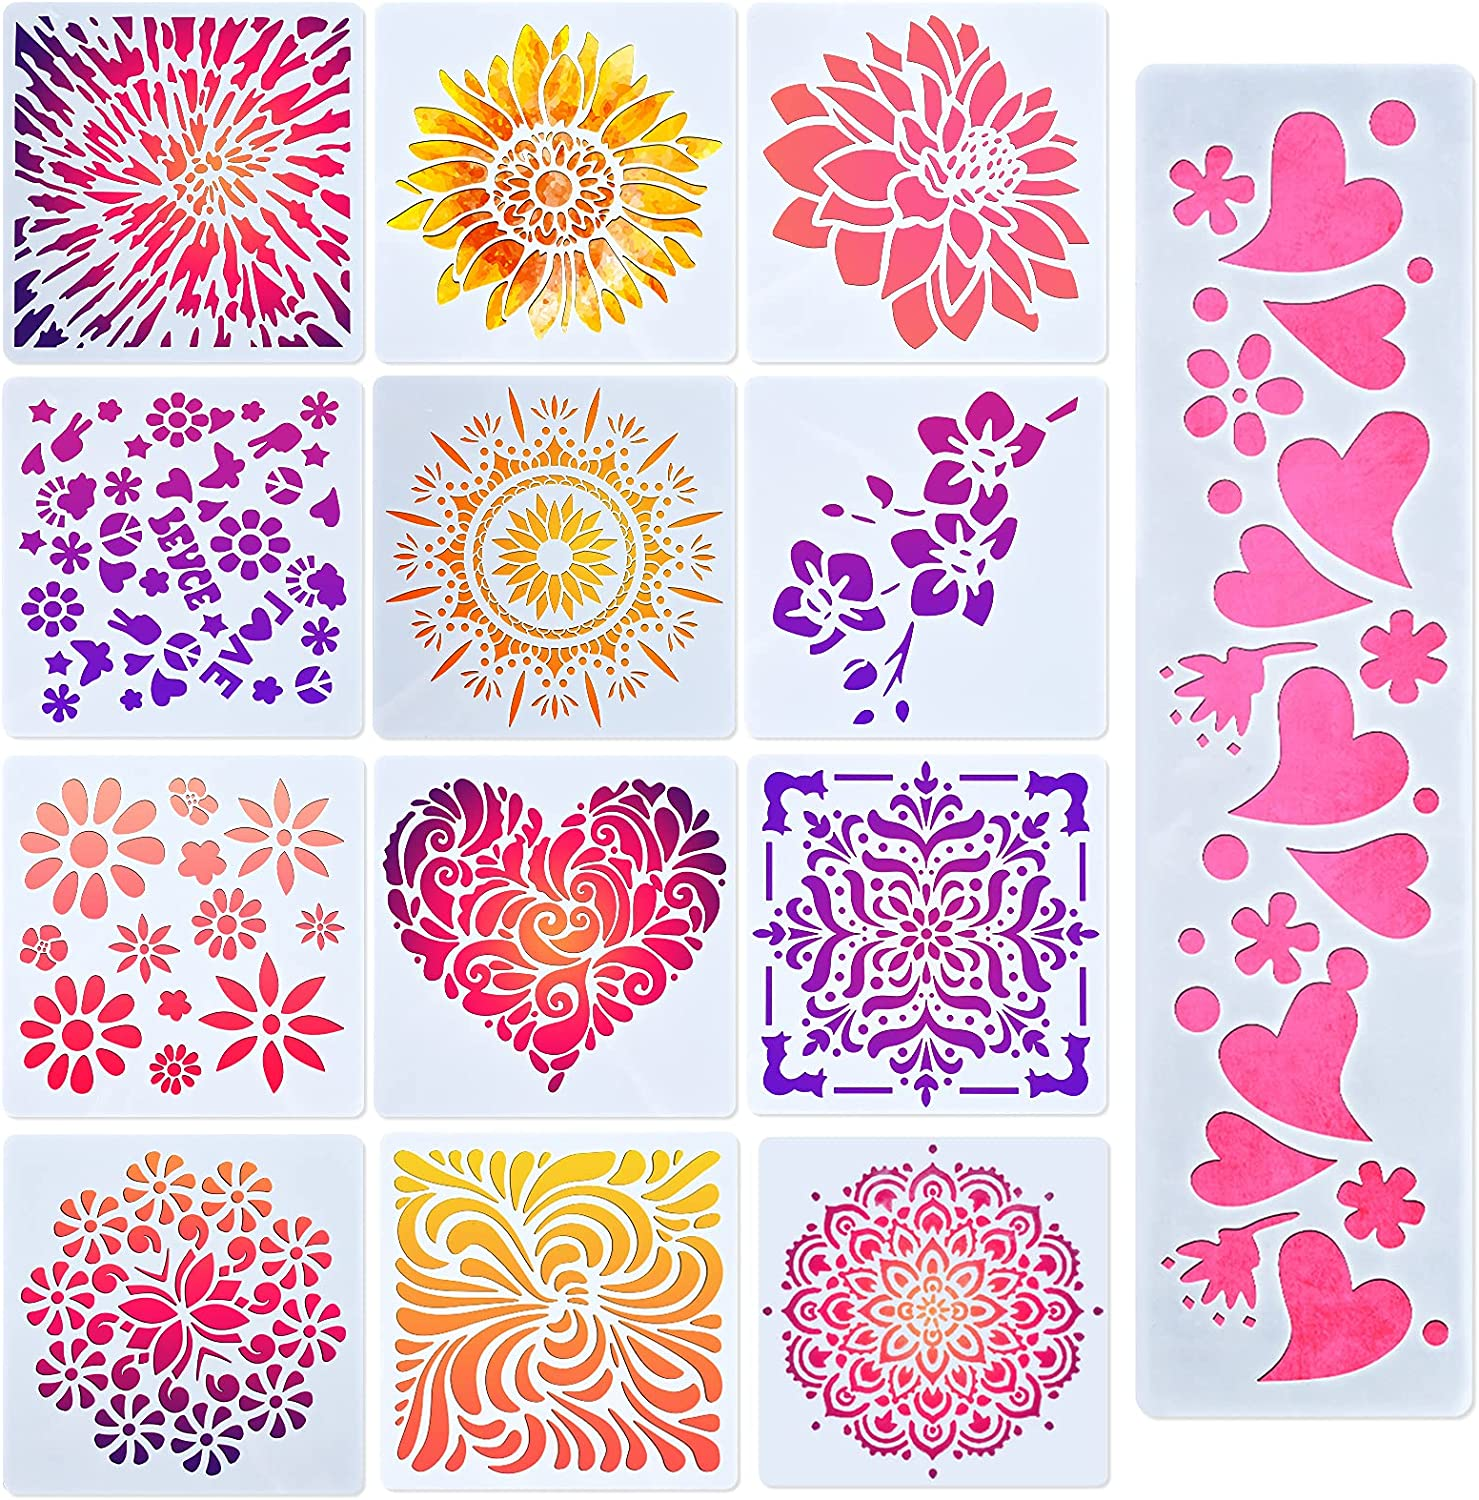 ORNOOU Boho and Flower Painting Stencil, 13 Pieces Reusable Floral Mandala Stencils for Painting on Wood Wall Fabric Canvas, Fabric Stencils Designs for DIY Art Craft Home Decoration